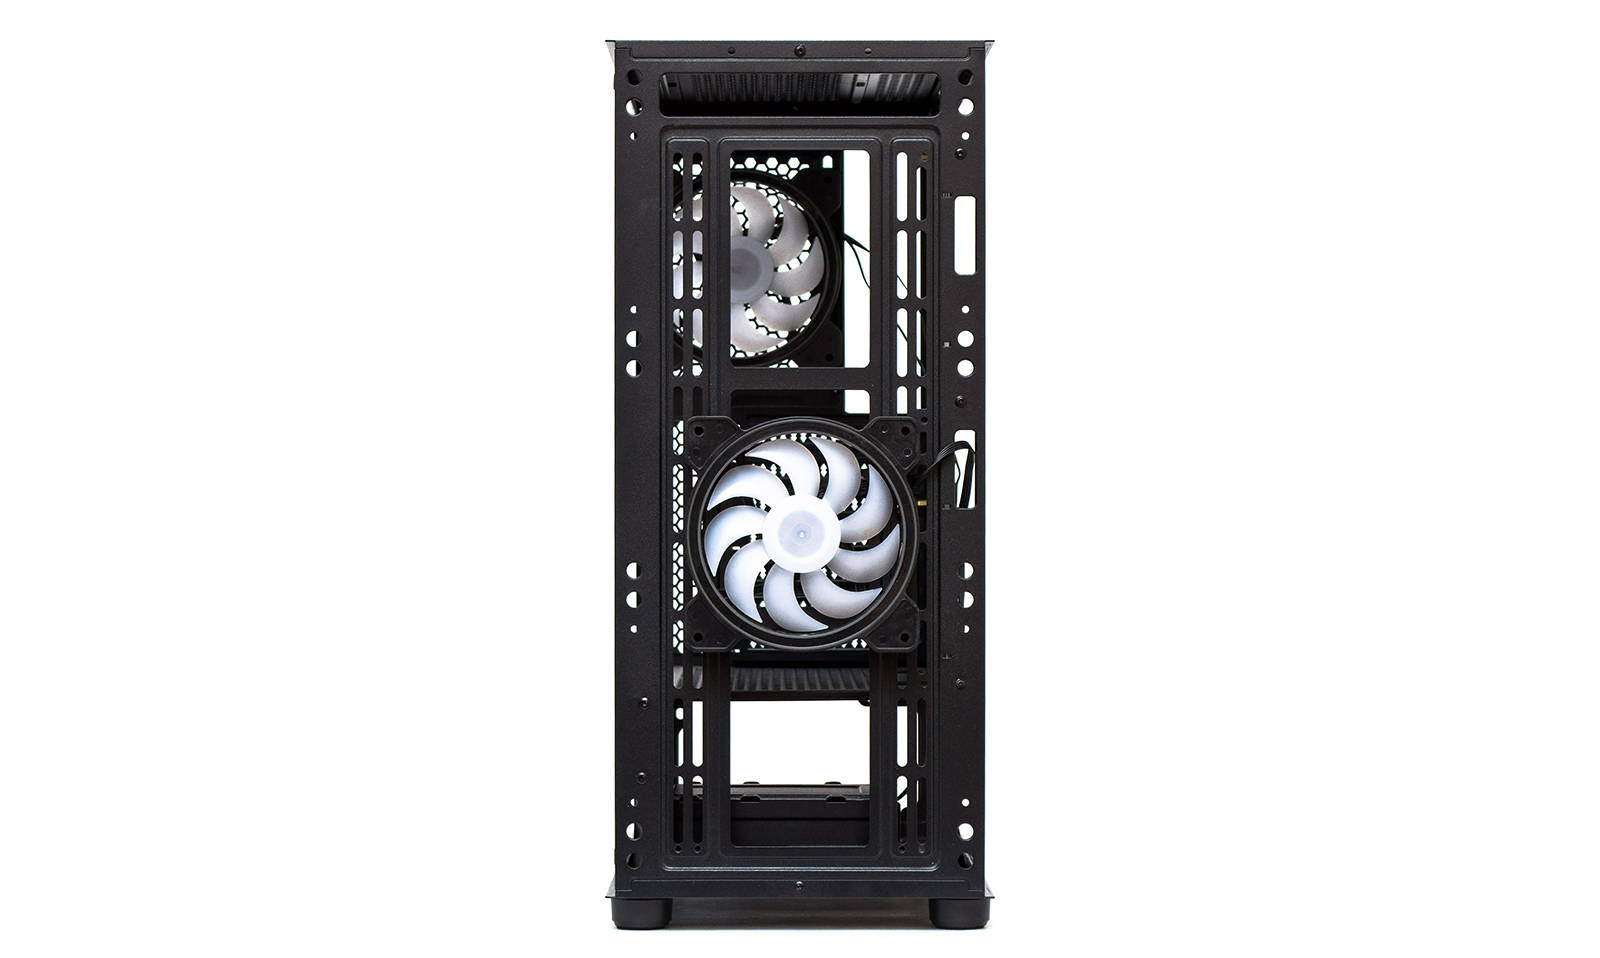 Корпус Aerocool Menace Saturn RGB. Фото 26